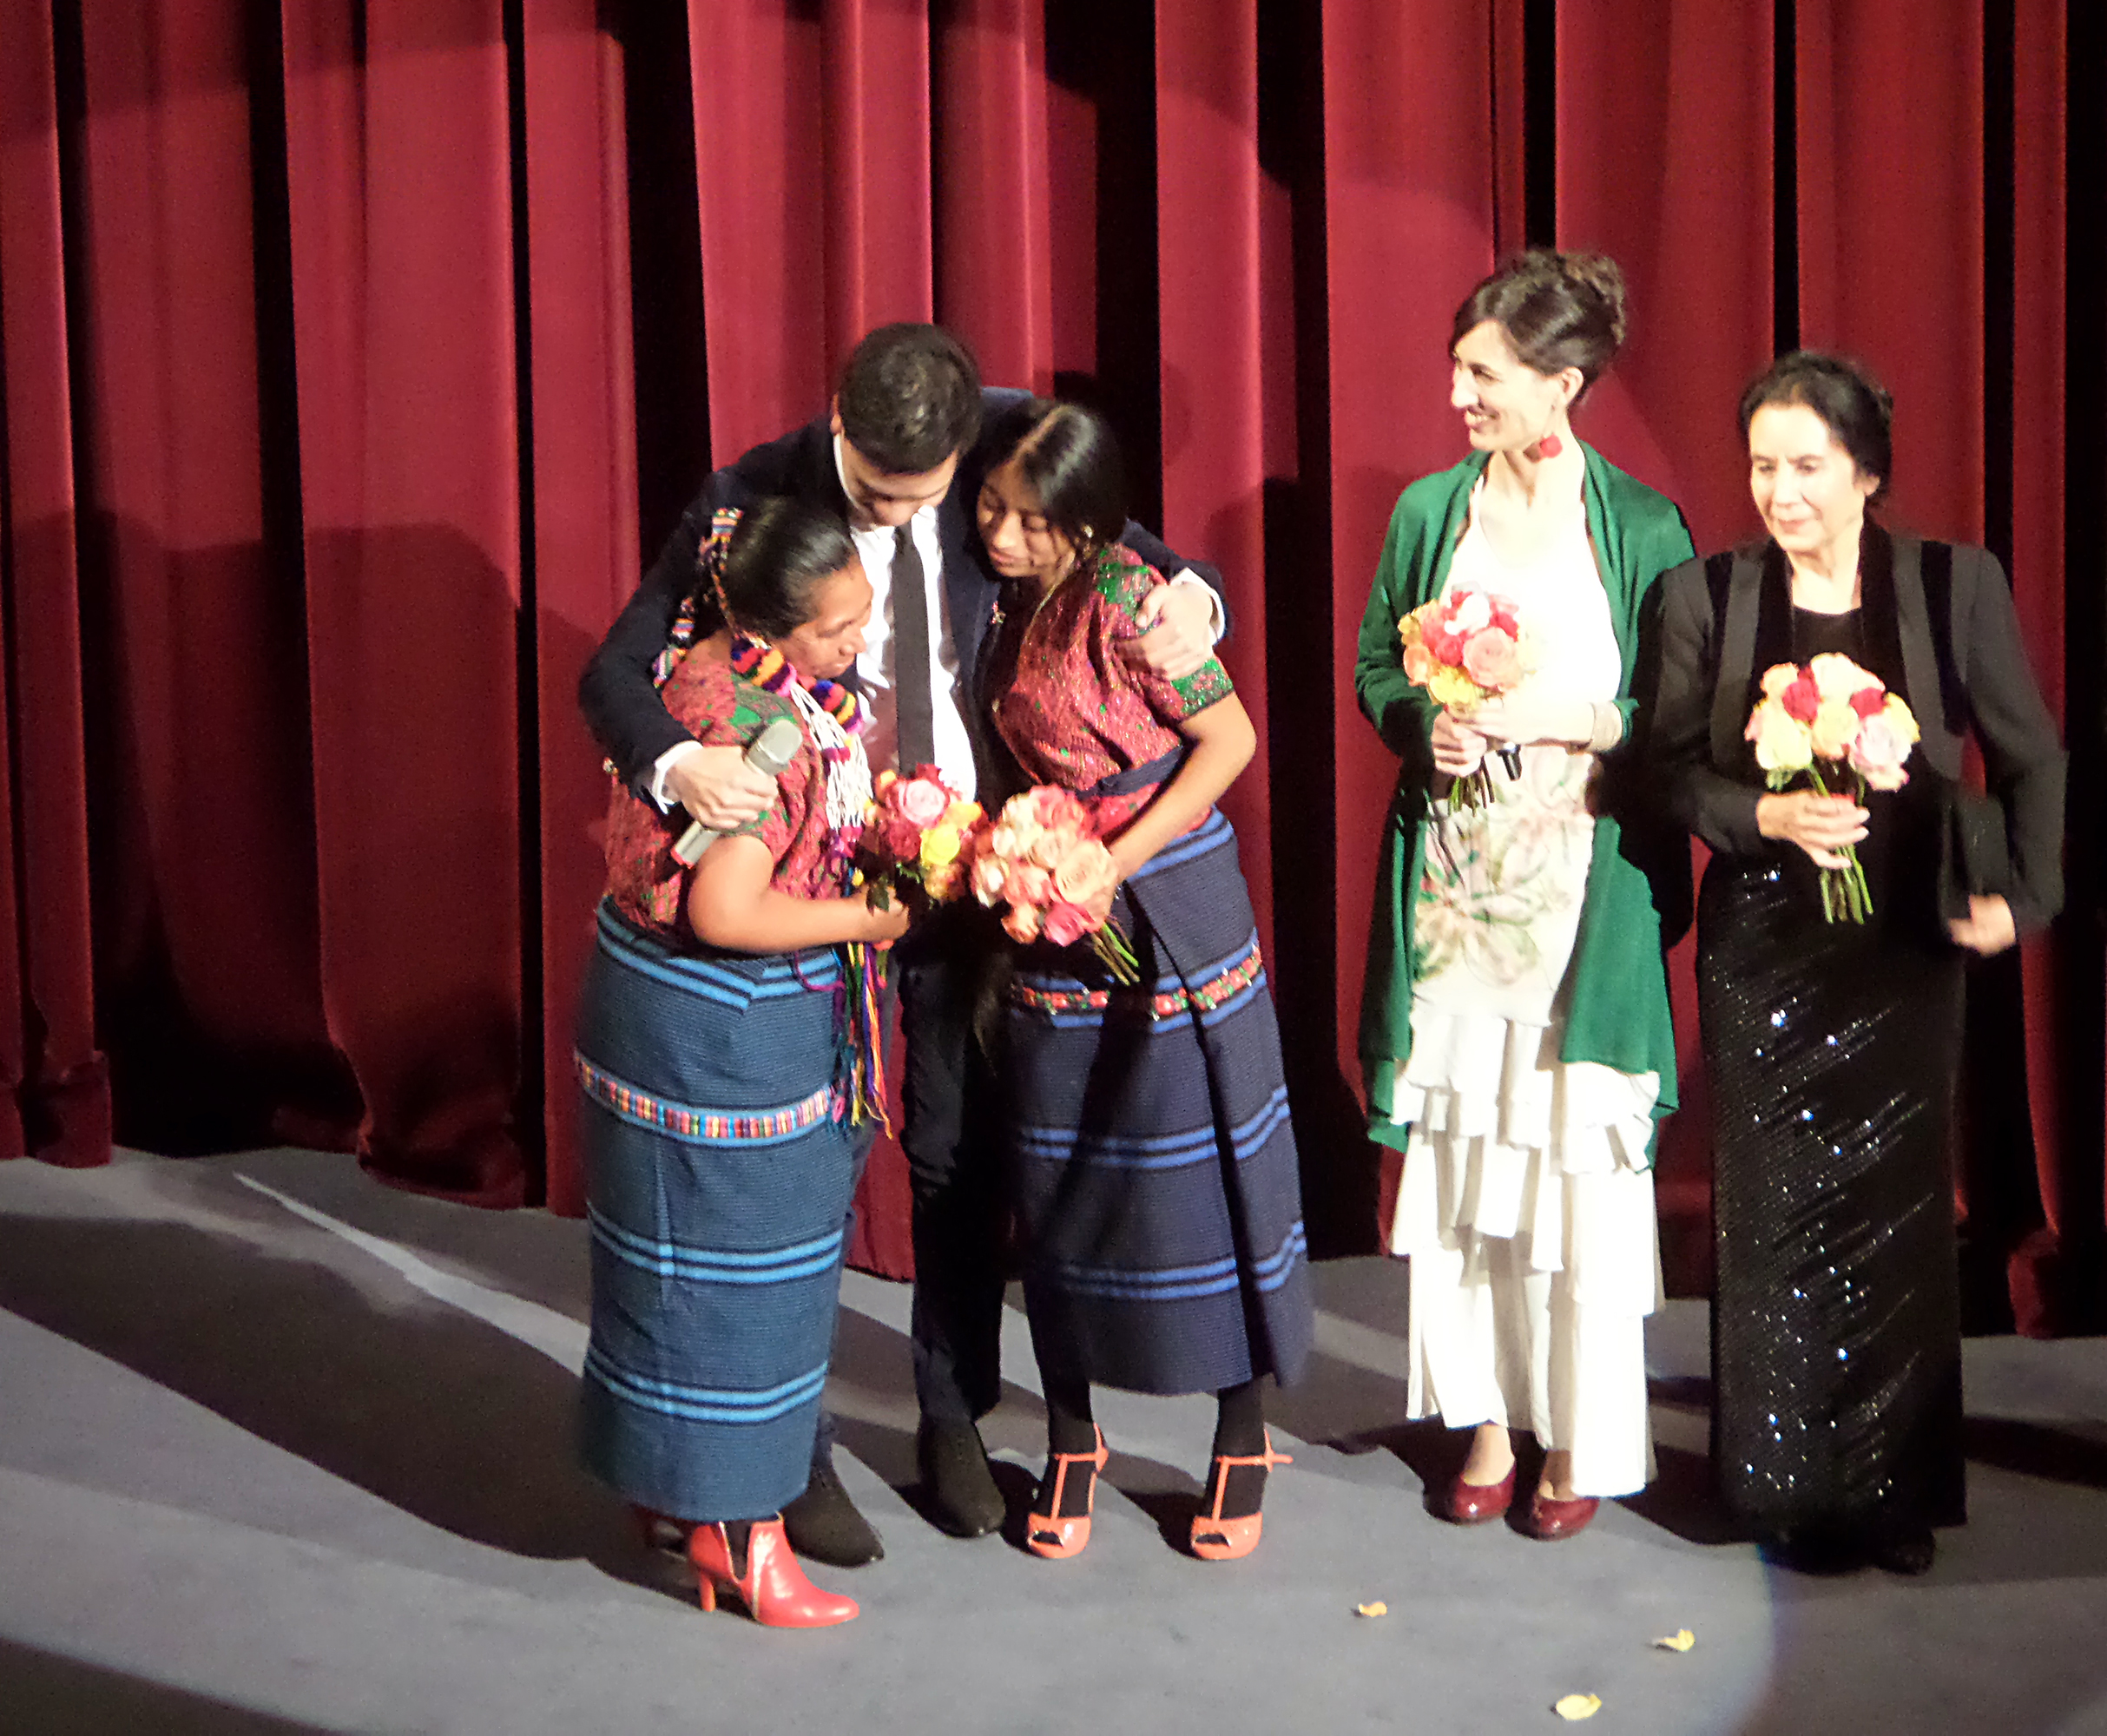 Ixcanul Berlinale 2015 competition copyright: metterschling 2015